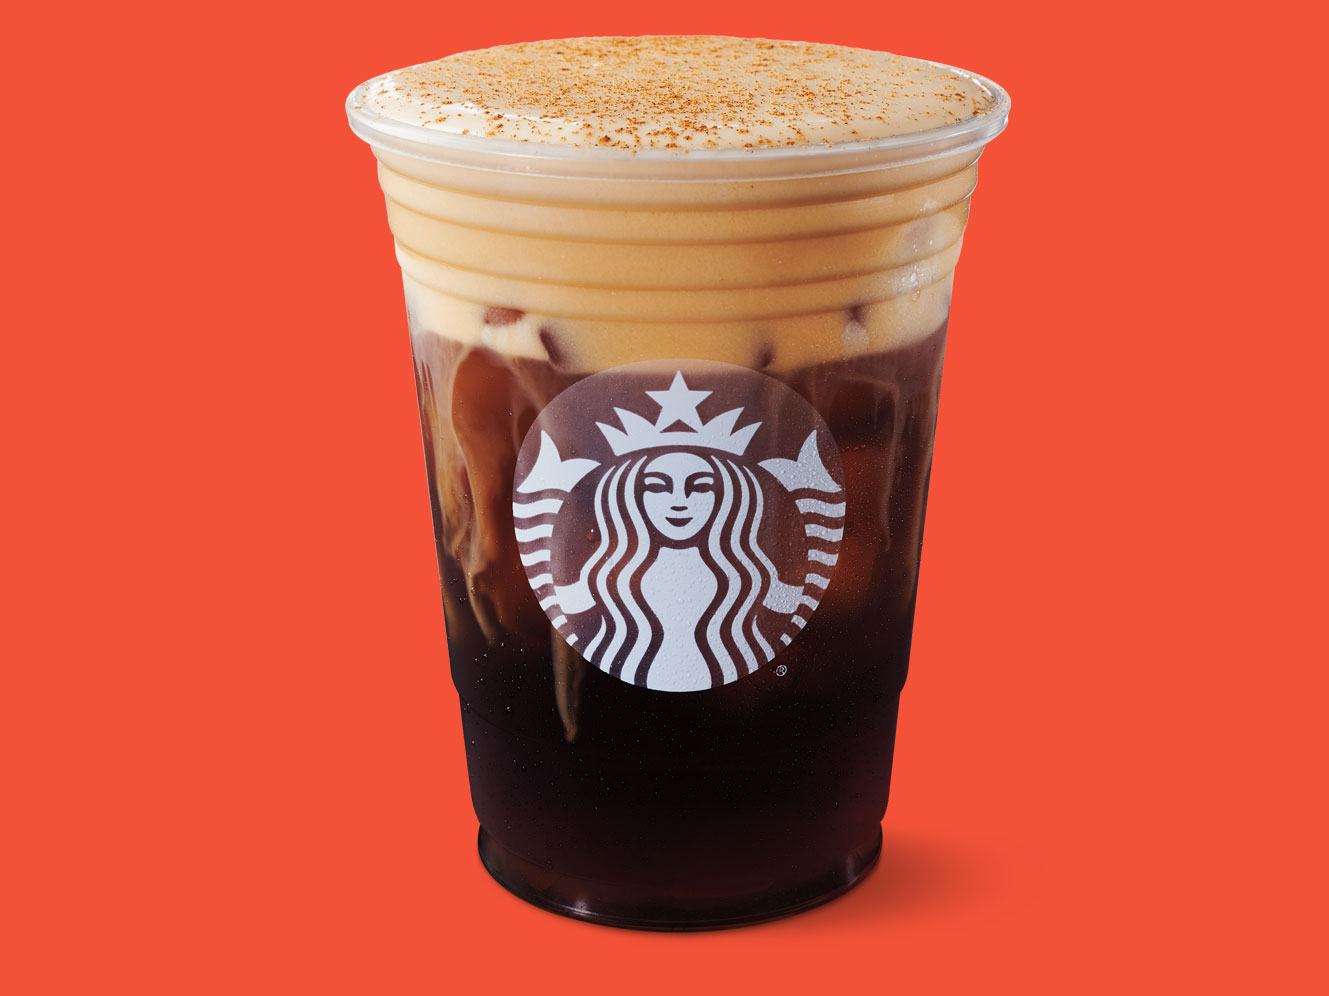 starbucks-Pumpkin-Cream-Cold-brew-FT-BLOG0819.jpg